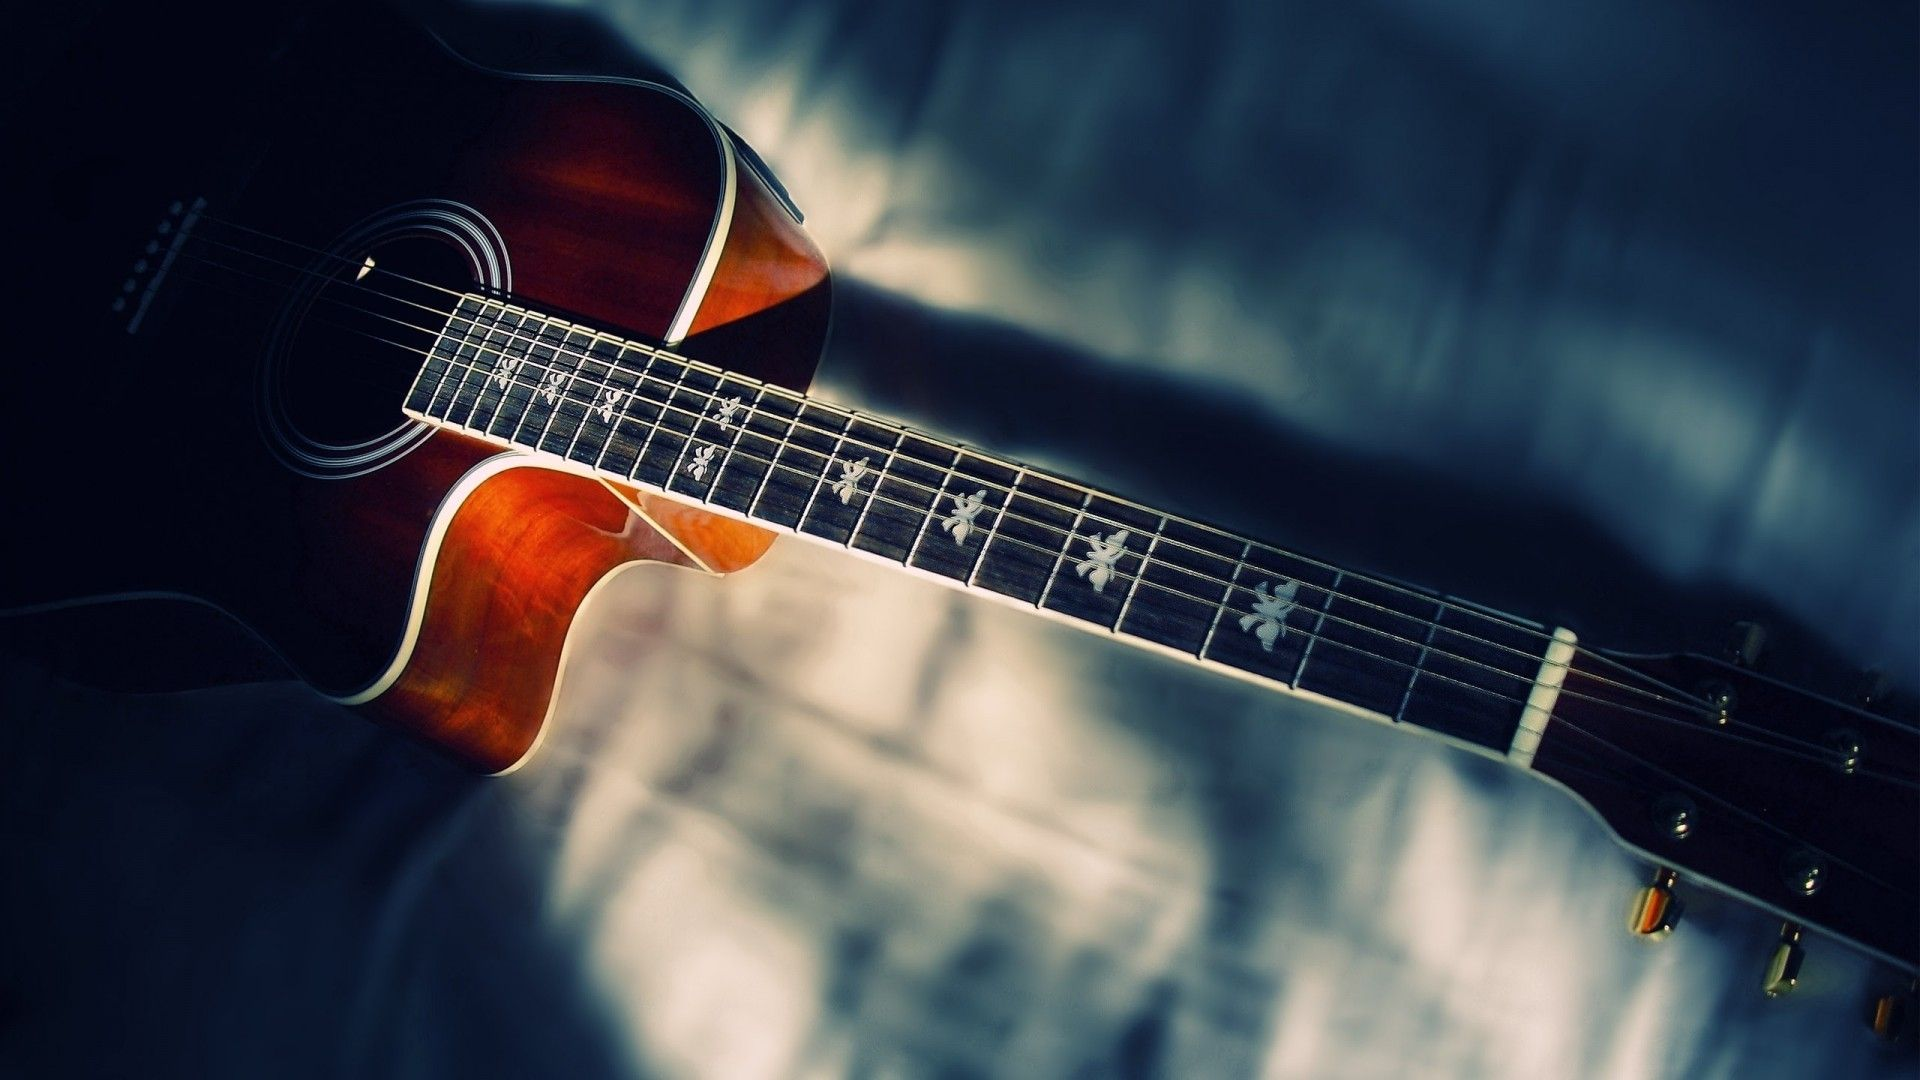 Hd Guitar Wallpapers Top Free Hd Guitar Backgrounds Wallpaperaccess